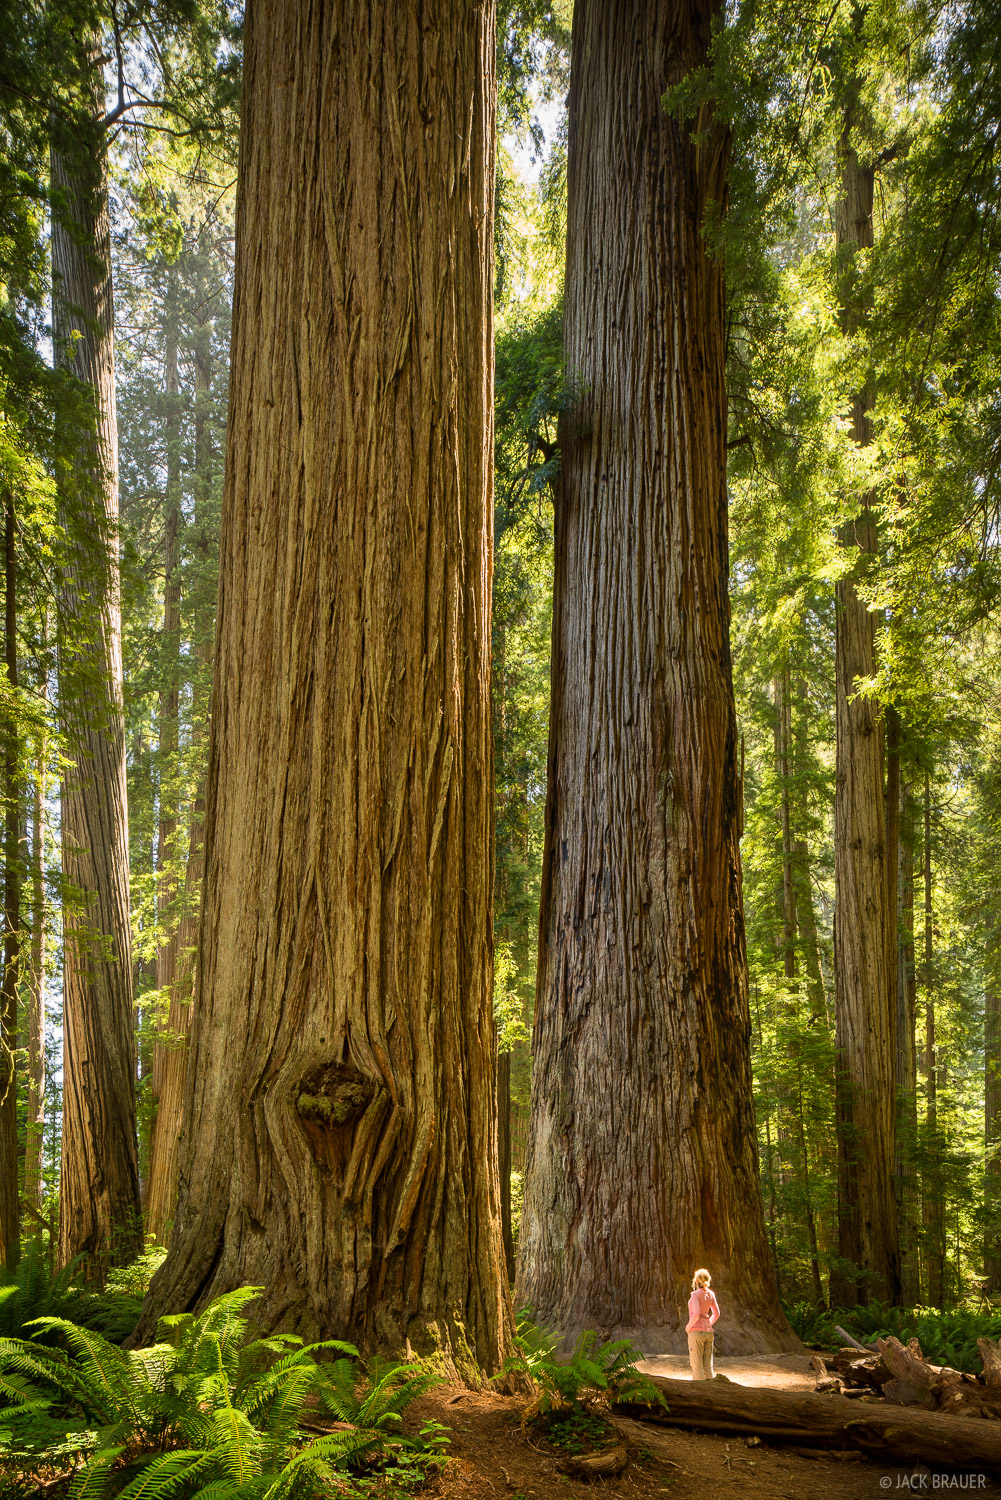 California, Jedidiah Smith Redwoods State Park, Stout Grove, redwoods, photo